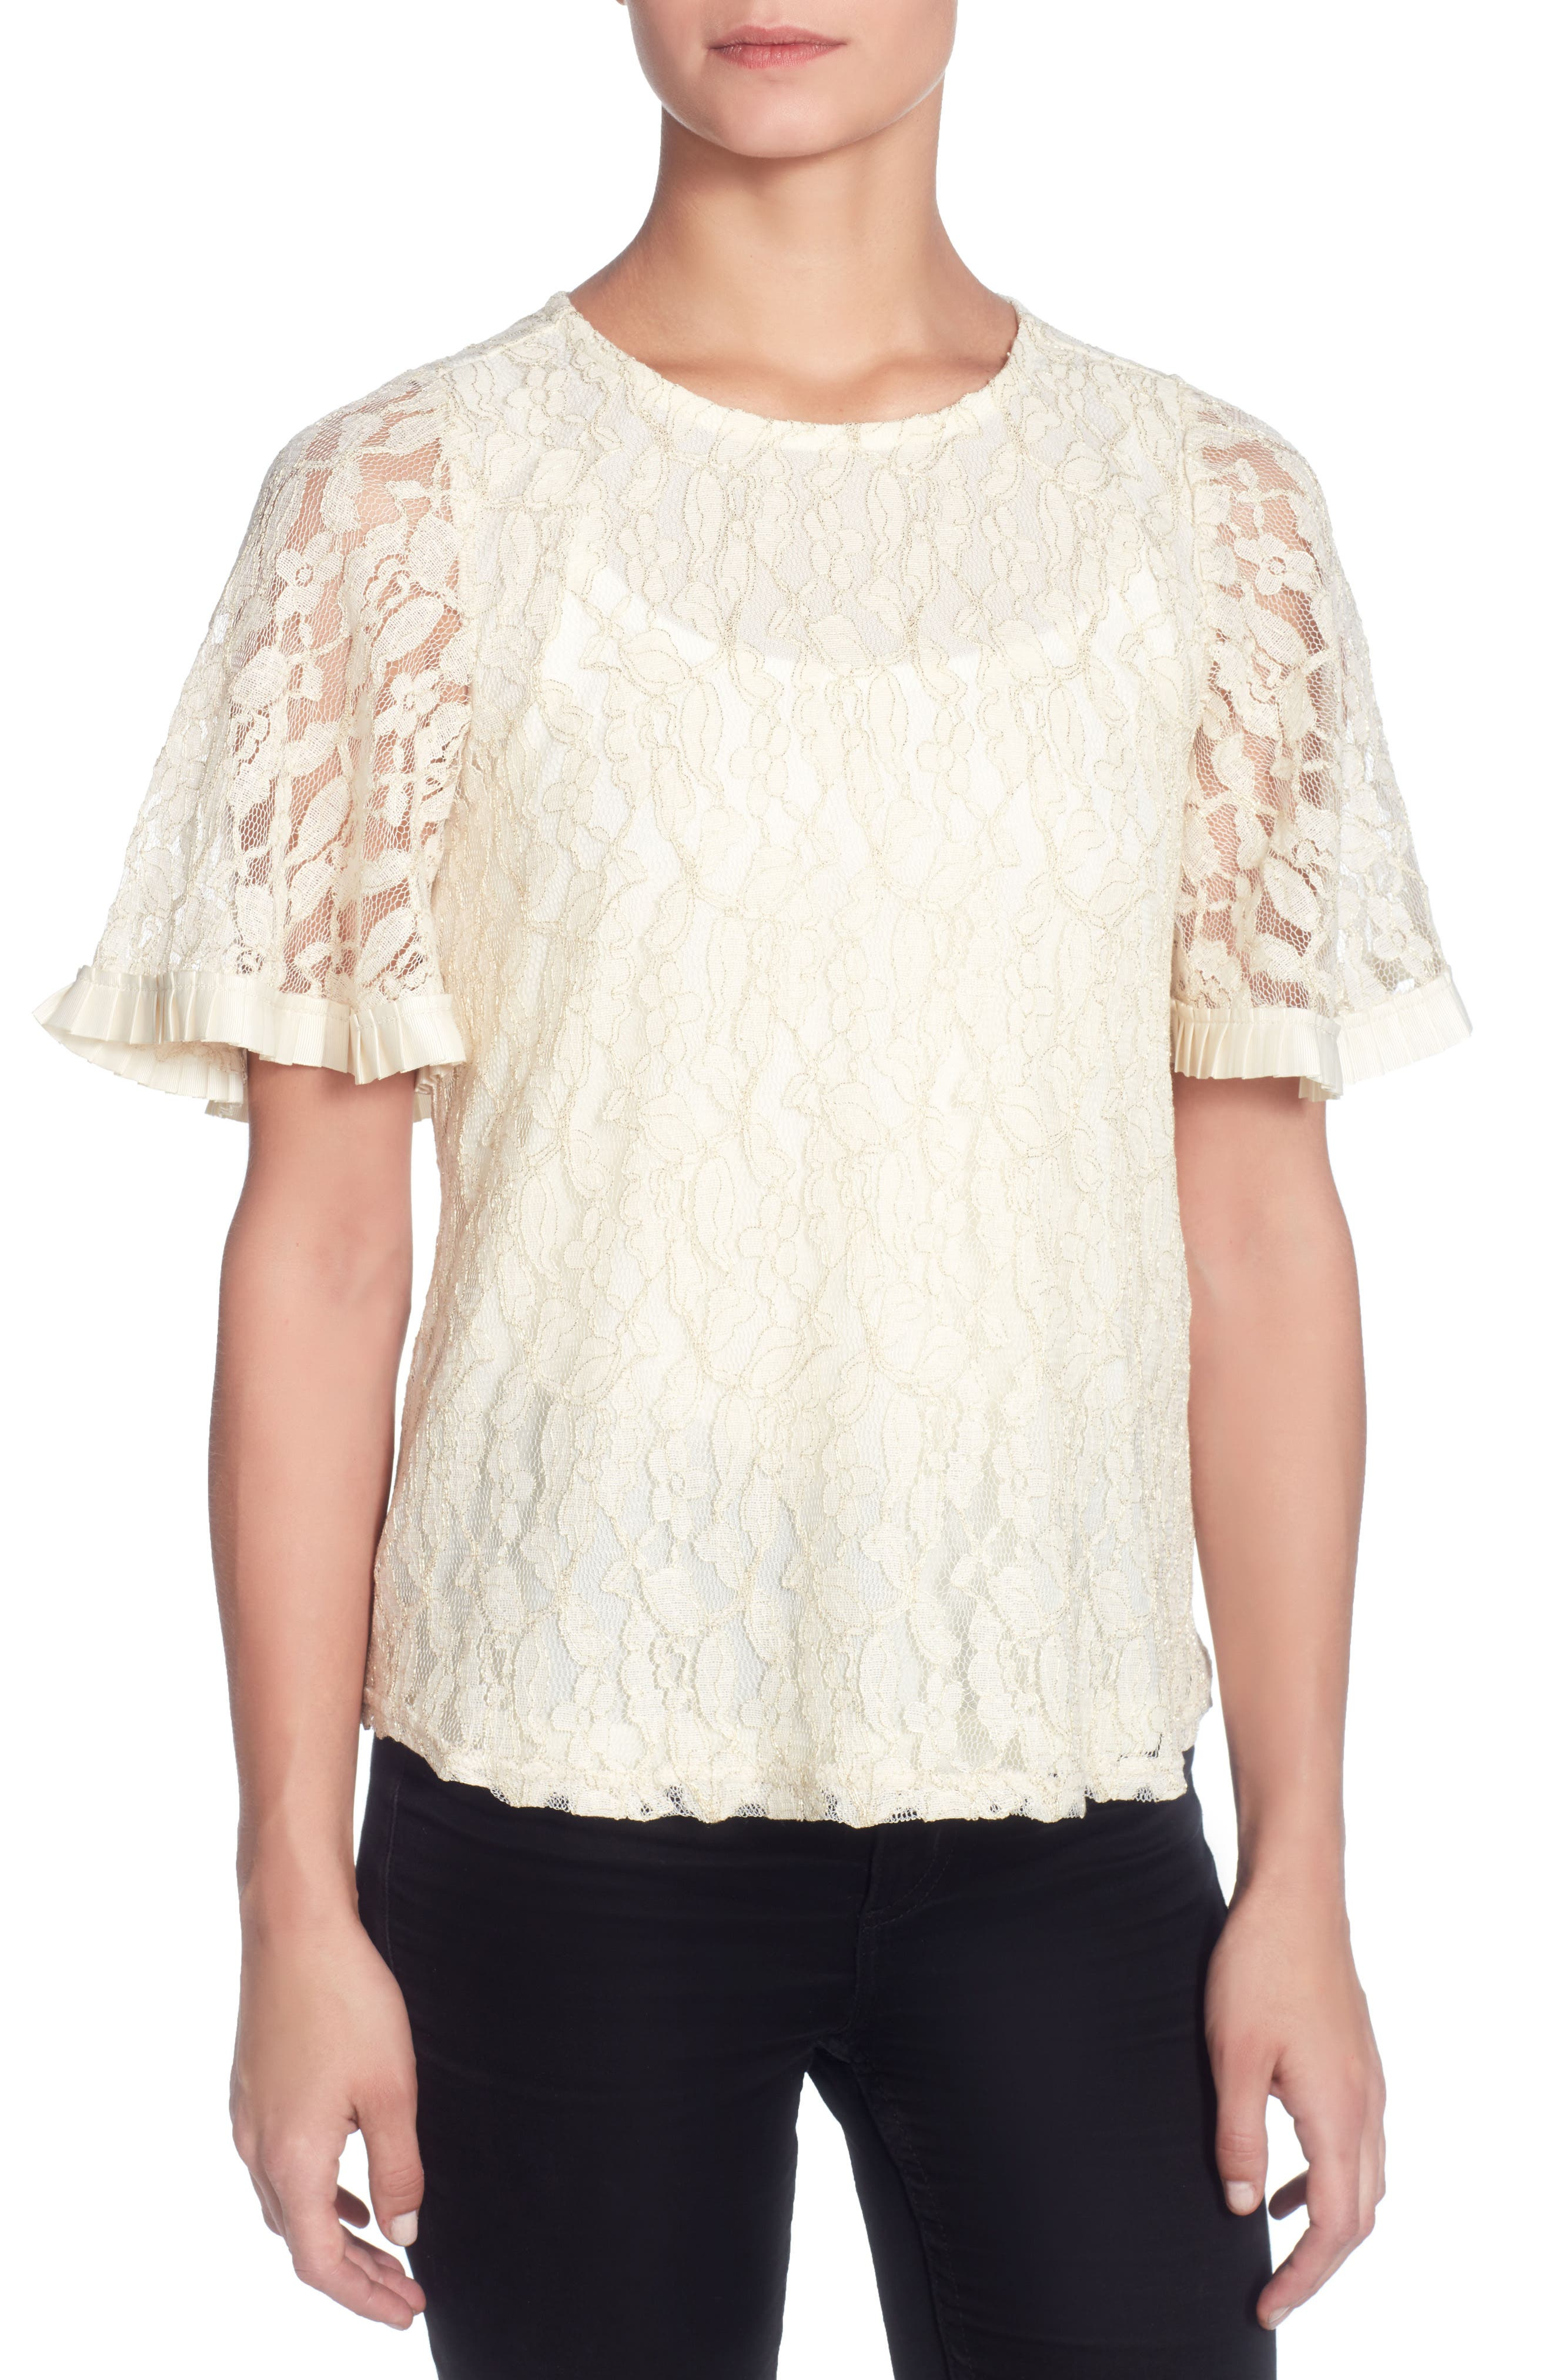 Opal Lace Top,                             Main thumbnail 1, color,                             Ivory